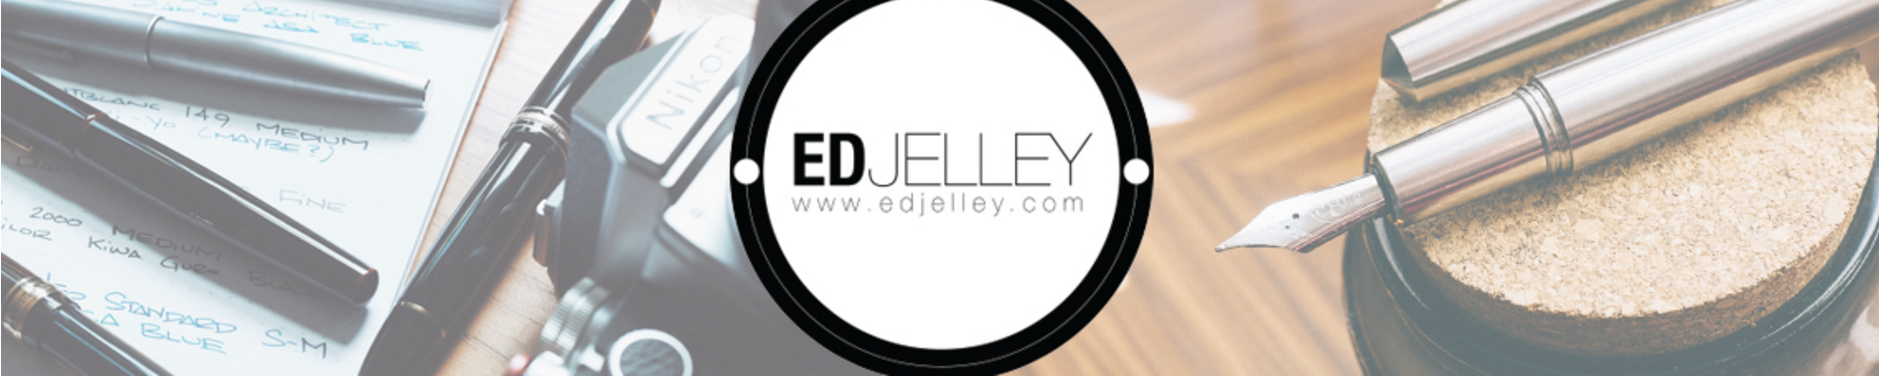 edjelley.com